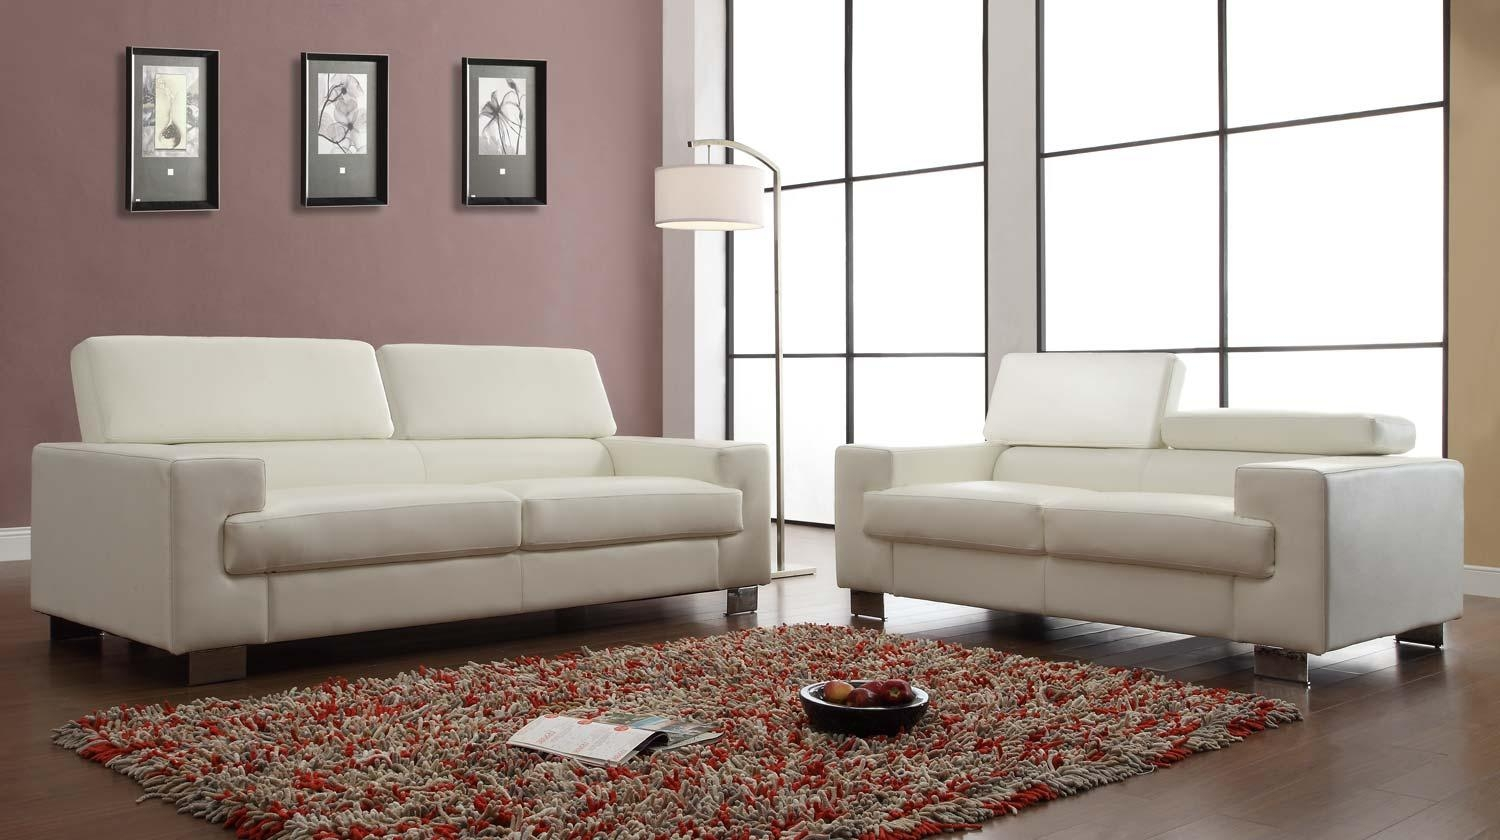 Homelegance Vernon Sofa Set – White – Bonded Leather U9603Wht 3 Within Homelegance Sofas (View 6 of 20)